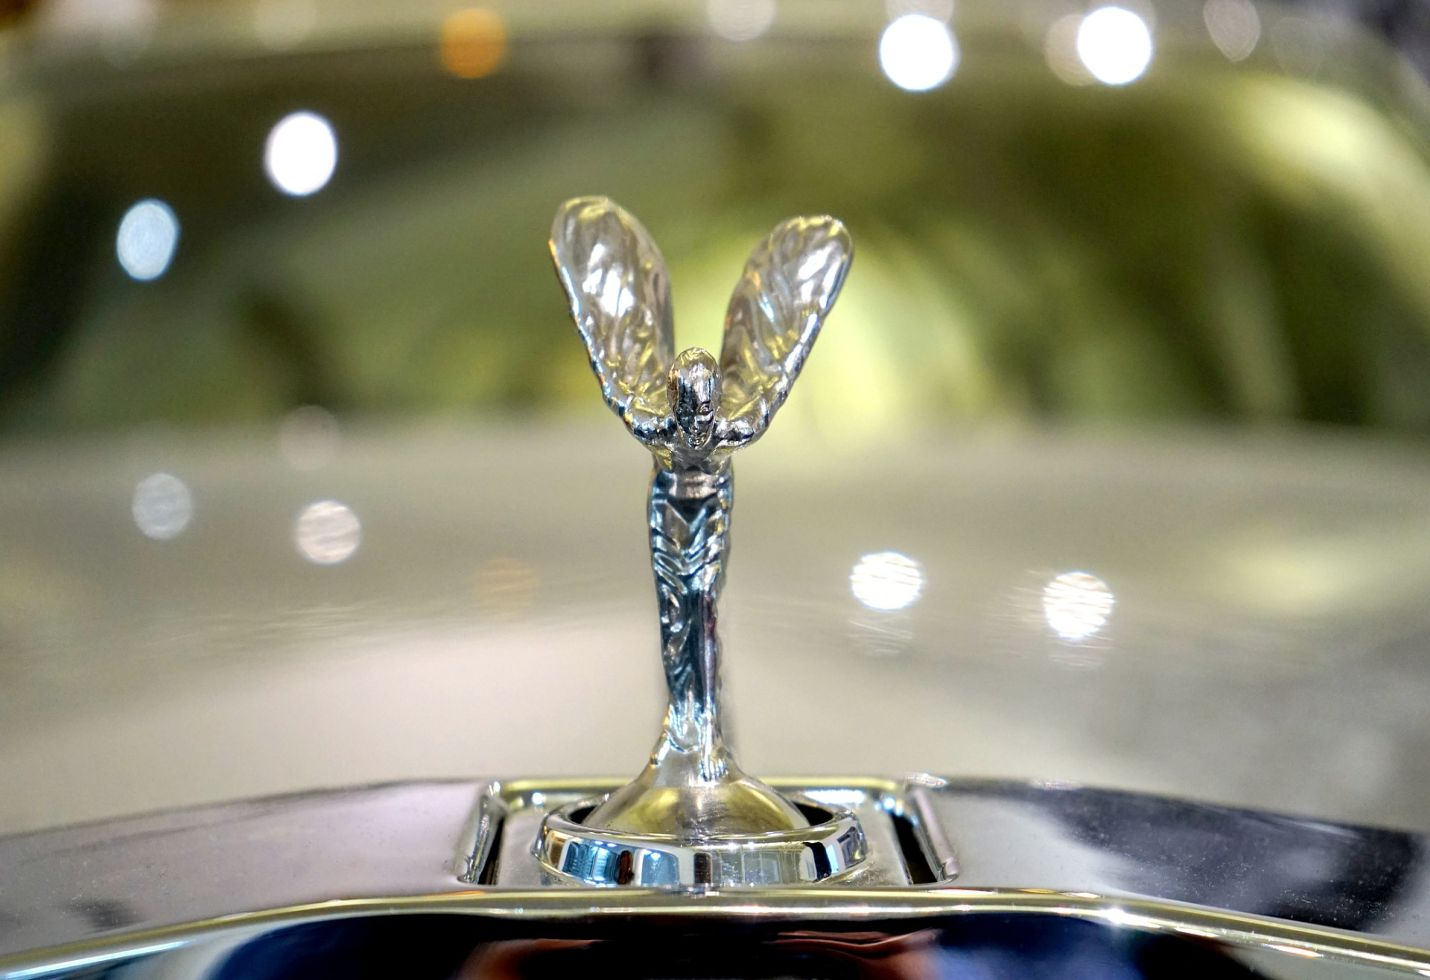 Rolls Royce Spirit of Ecstasy is not up for grabs anymore